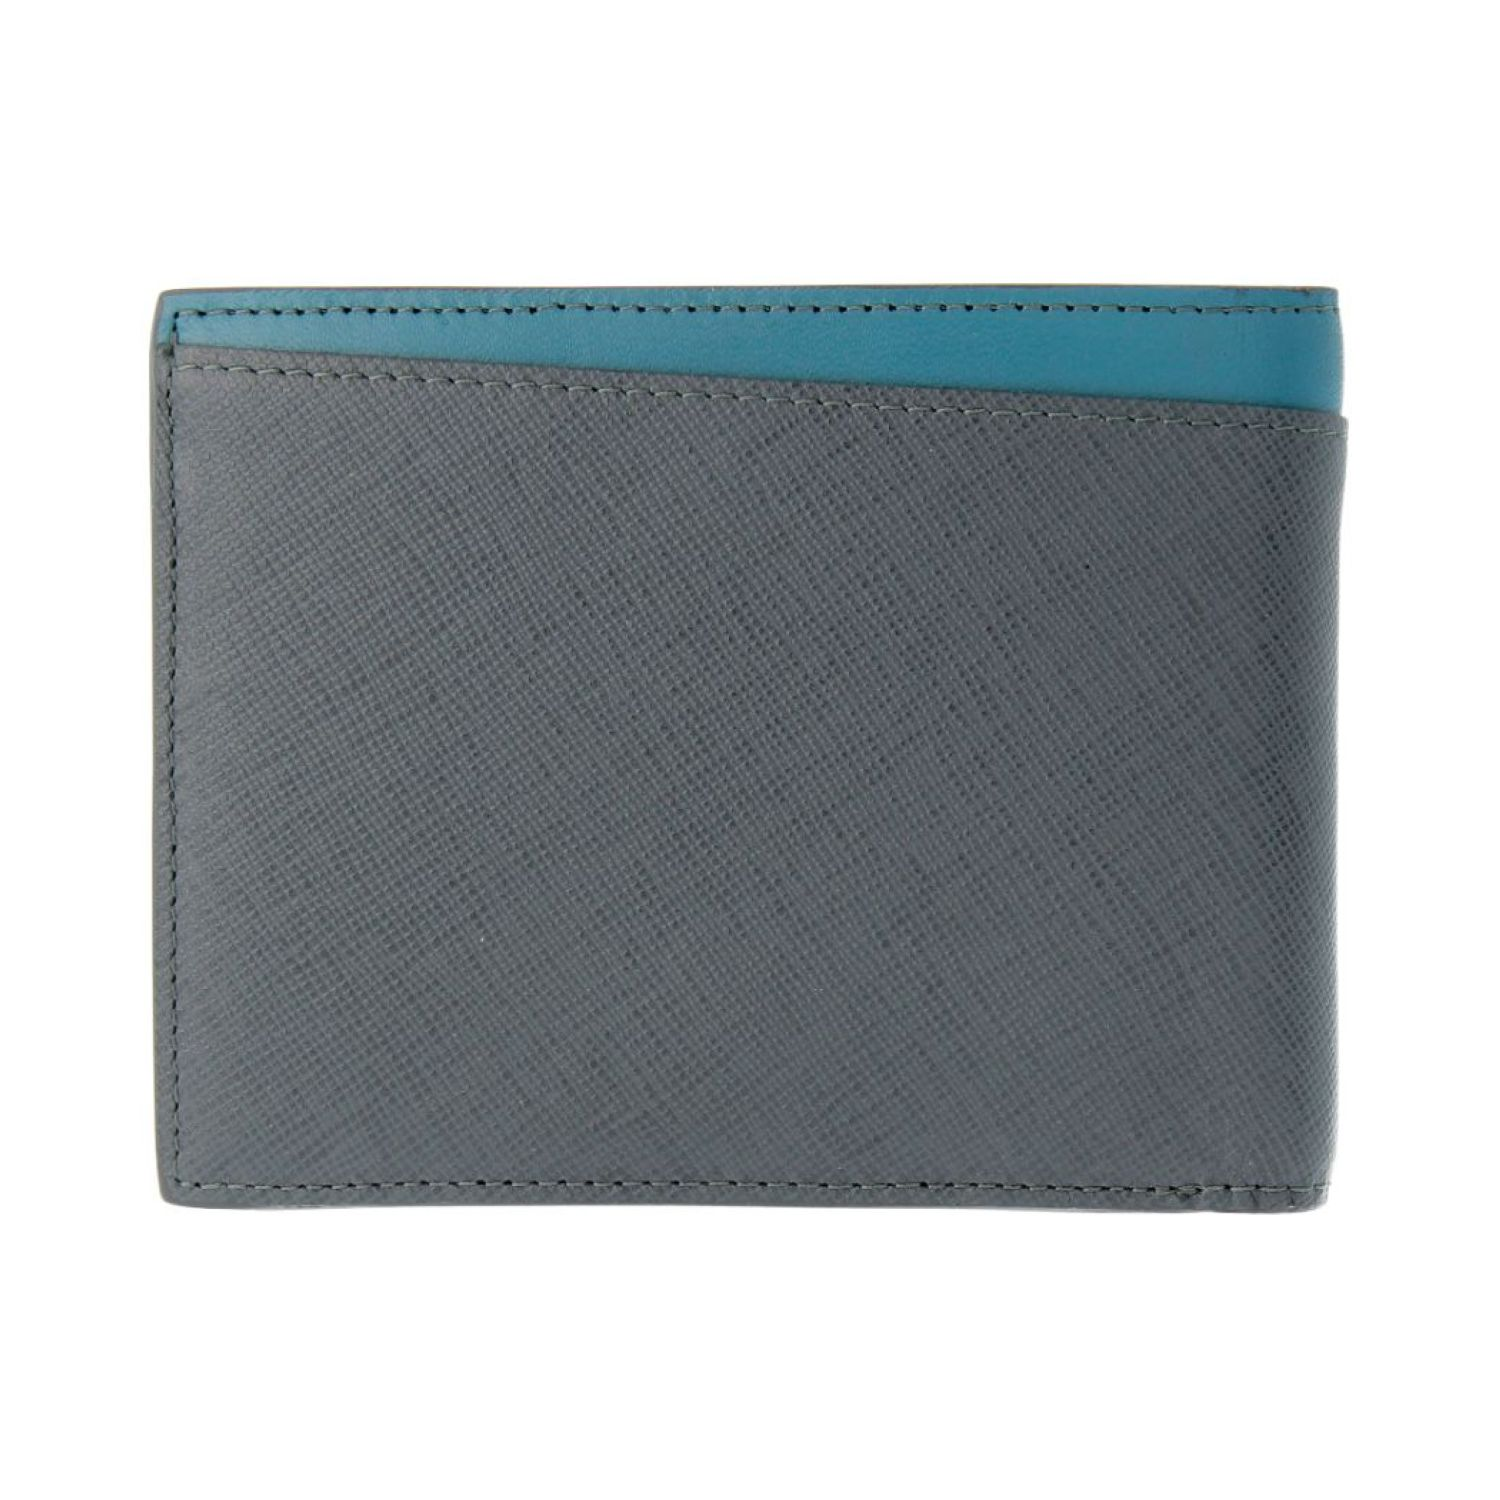 d373dede9163 Buy Crossing Saffiano Transition Bi-Fold Wallet With Coin Pocket ...